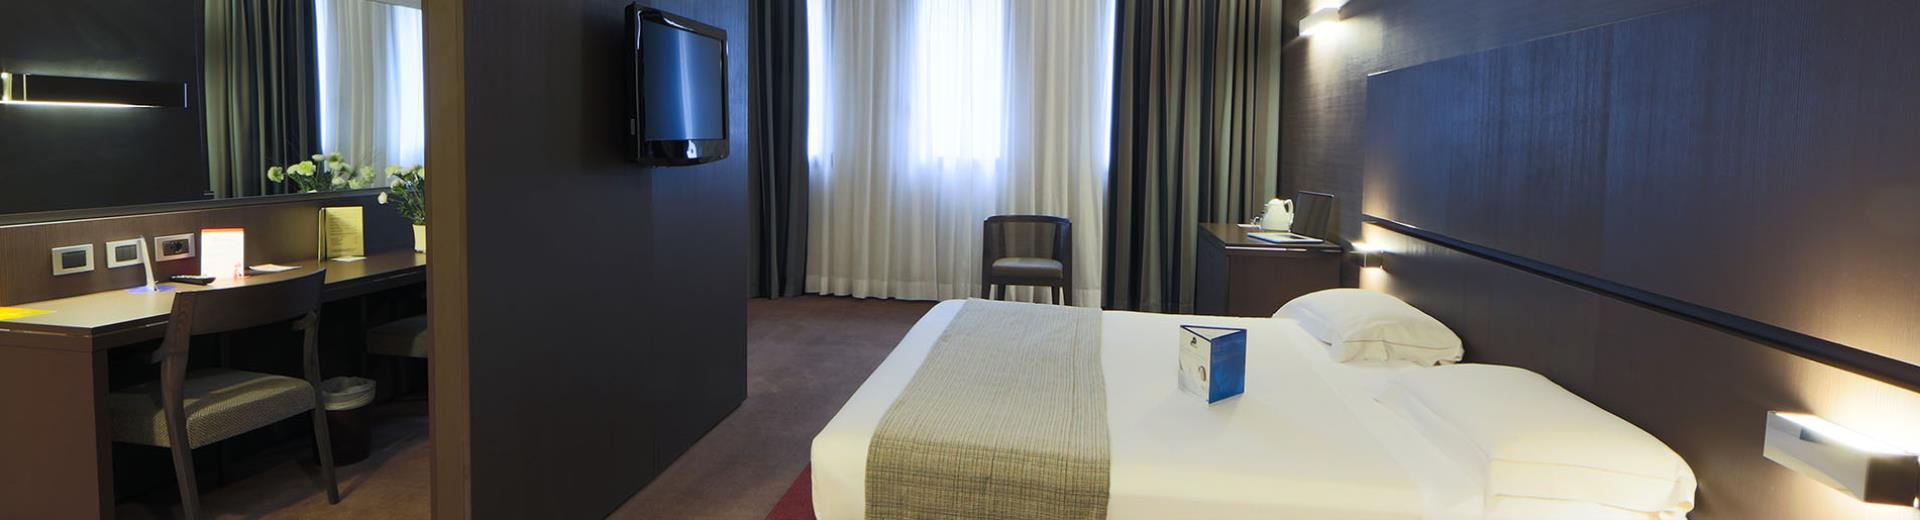 Discover the roomtypes of our 4 star hotel near Milan with every comfort for your business and leisure stay!